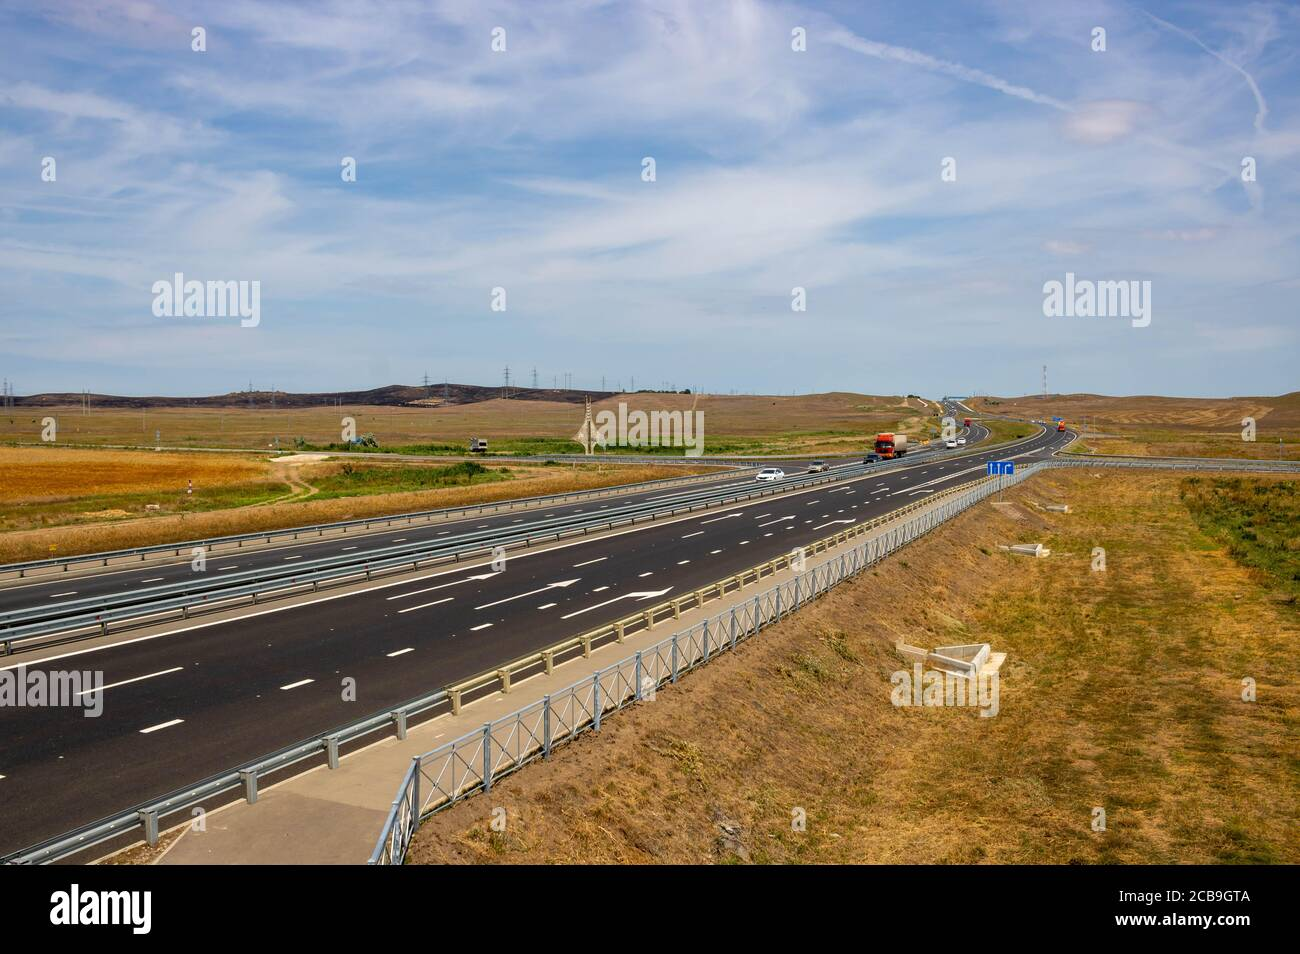 highway in steppe against a blue sky,long road stretching out into the distance. Stock Photo